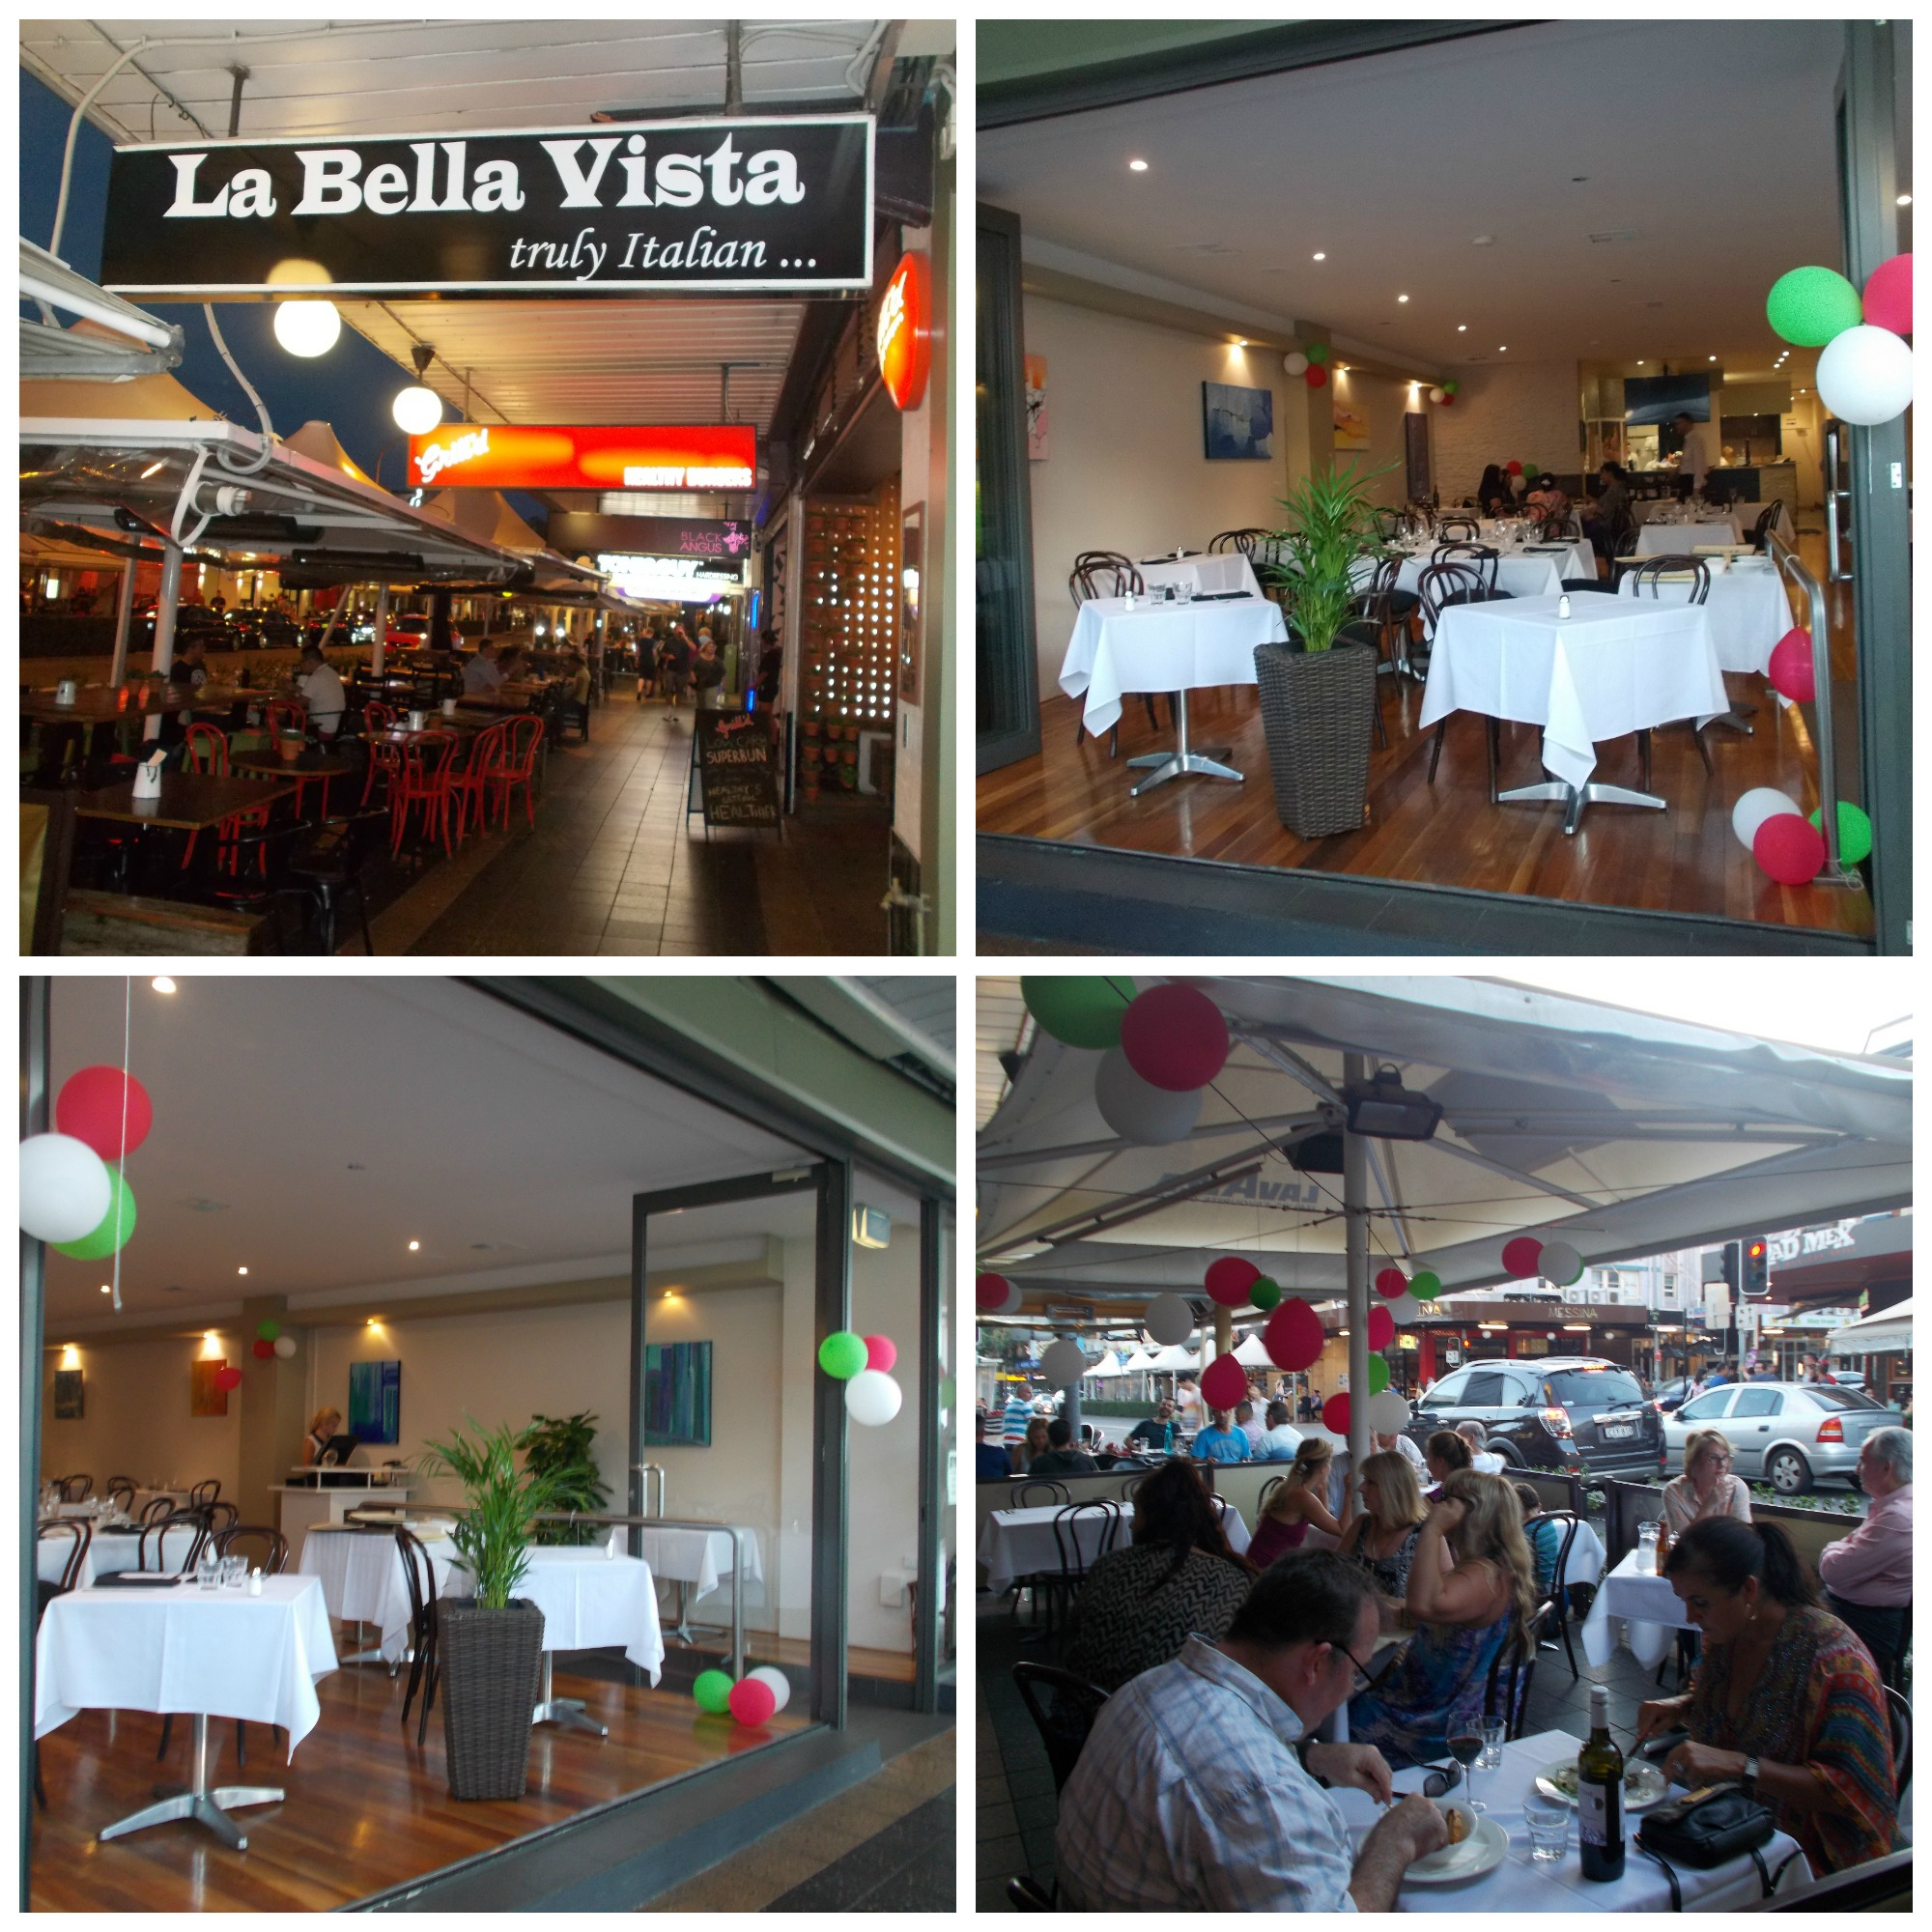 La bella vista restaurant sydney for Ristorante la vista